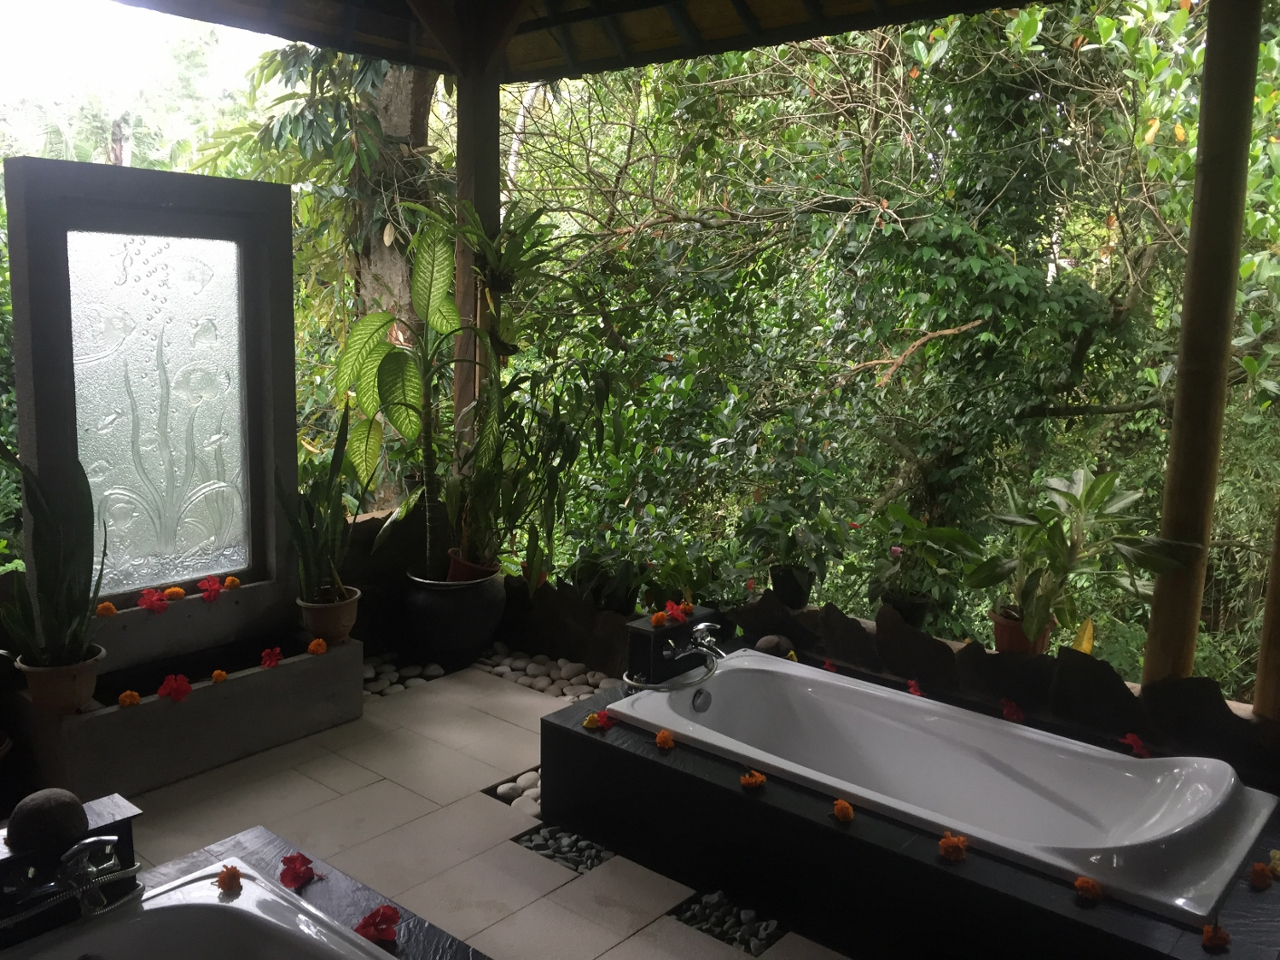 Cantika Zest Spa in Penestanan village - the massage room. This is one of the must-see places in Ubud. Read this insider's 2-day itinerary for Ubud and use it to plan your trip to Ubud. #ubuditinerary #ubudguide #baliindonesia #balitravel #bali #baliholiday #balinese #ubud